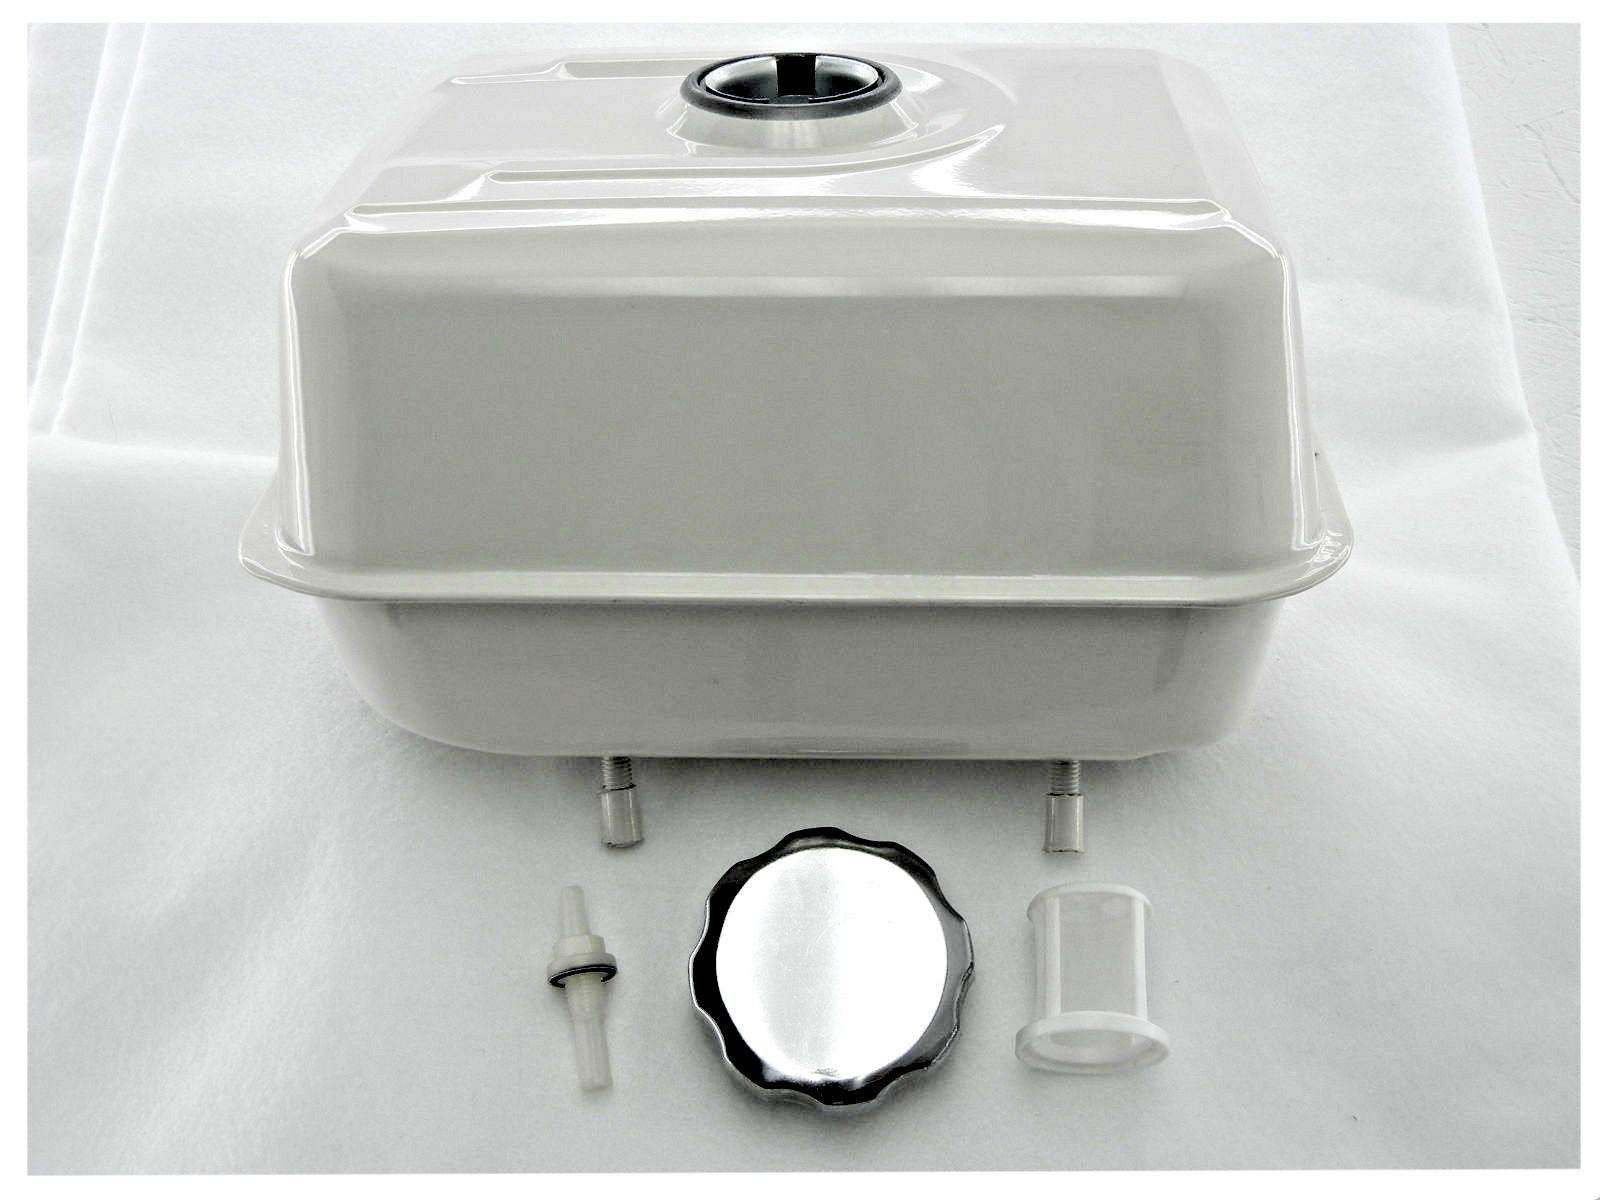 Proven Part Fuel Tank for GX240 GX270 GX340 GX390 Engines